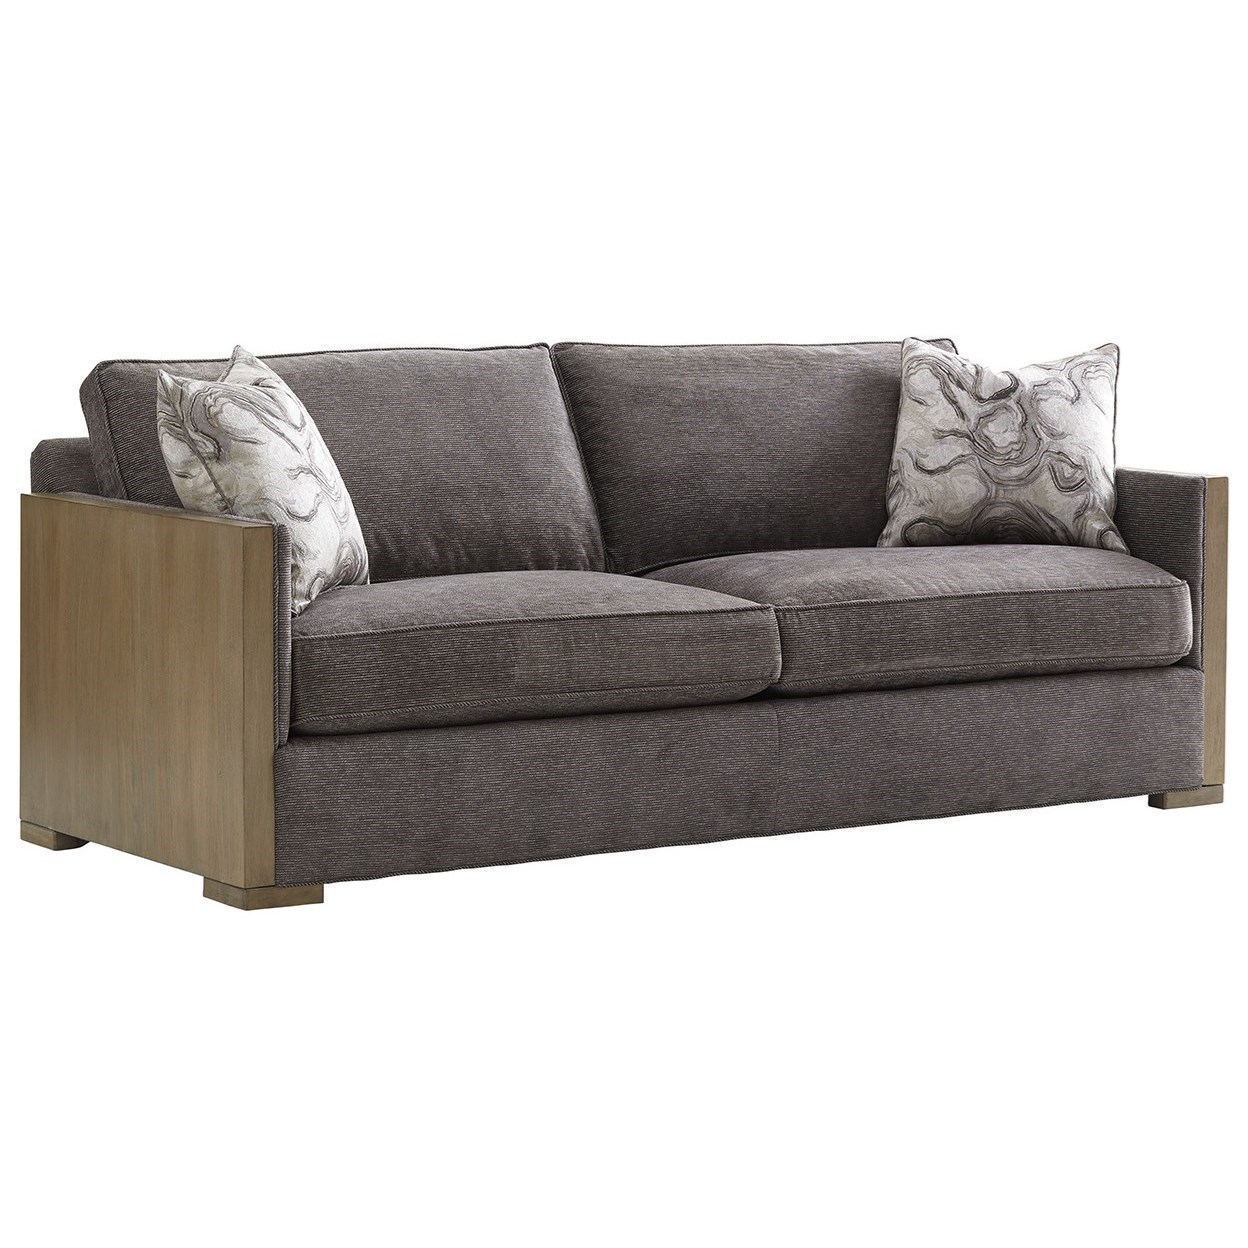 lexington shadow play delshire contemporary sofa with exposed wood arms johnny janosik sofas. Black Bedroom Furniture Sets. Home Design Ideas